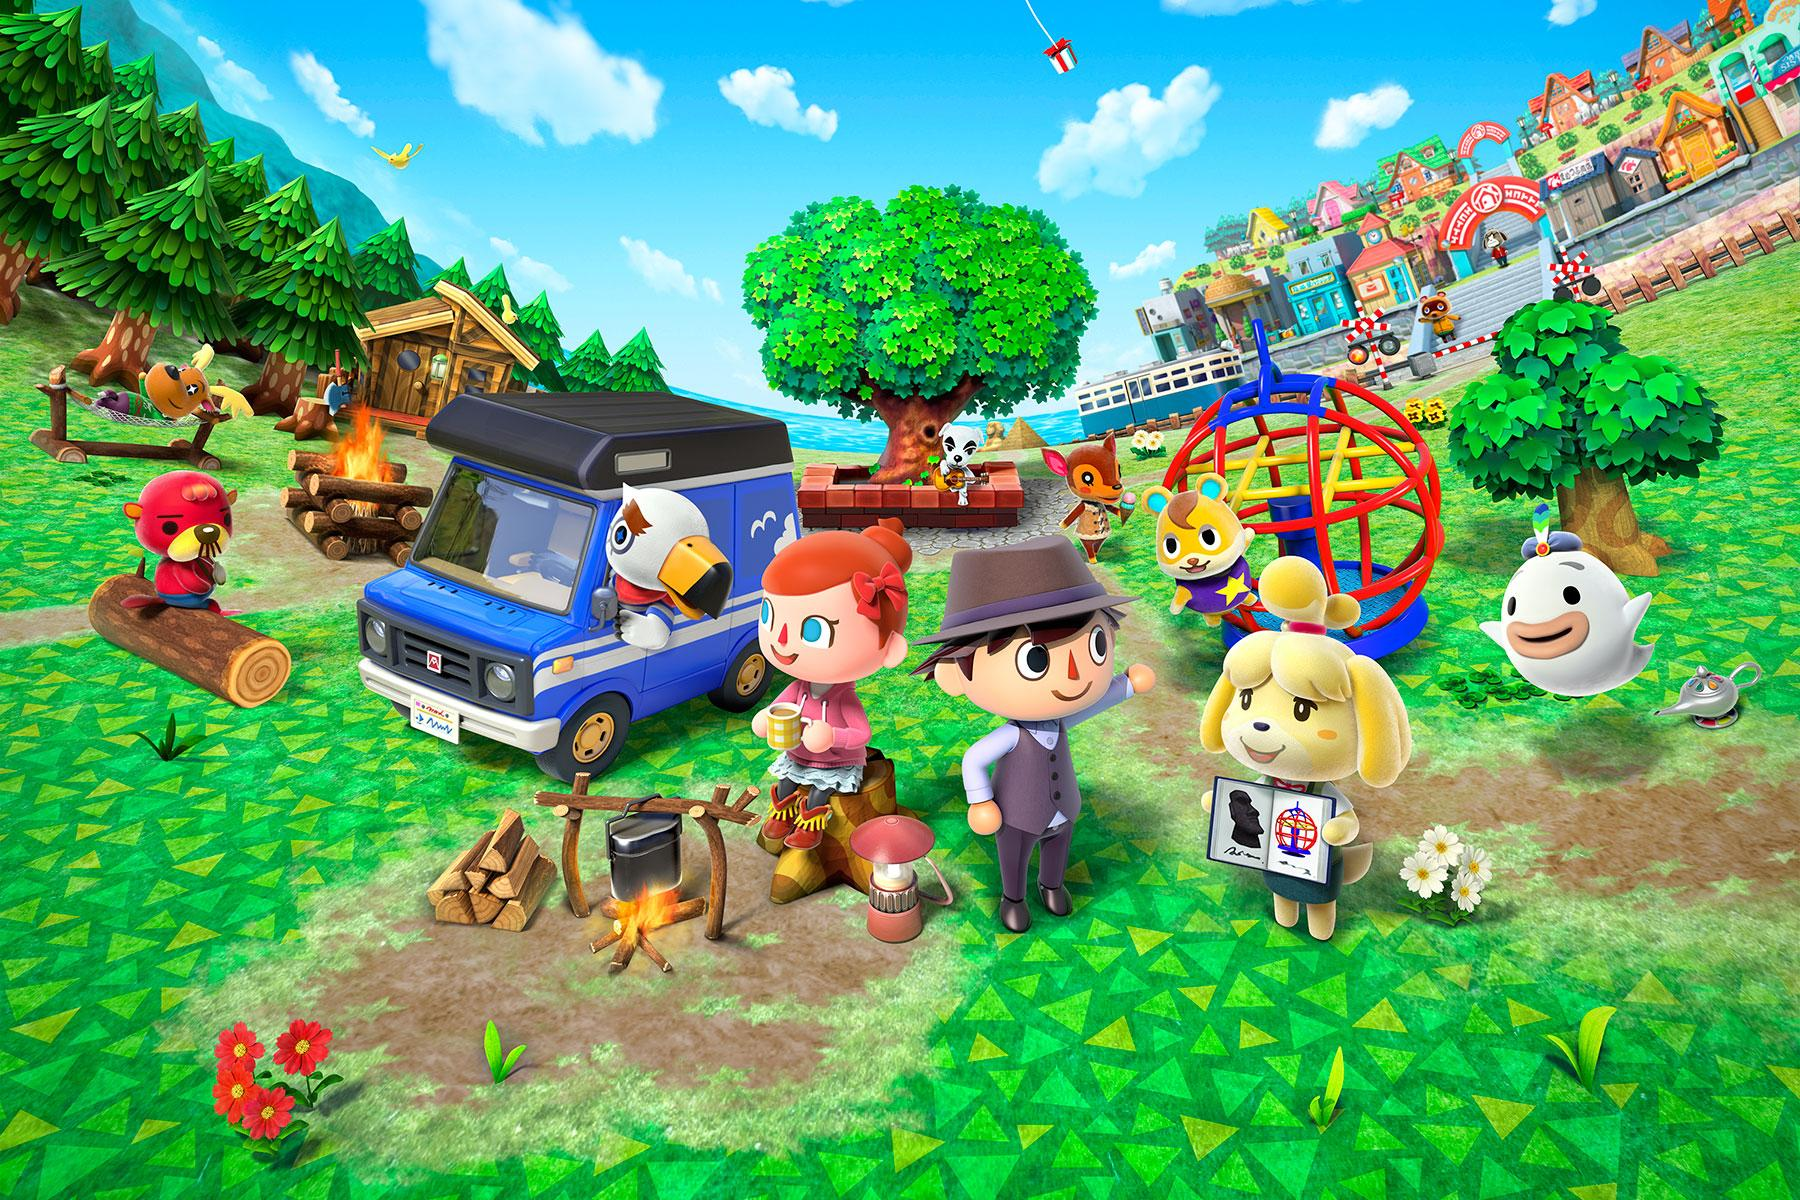 Nintendo's next Direct is all about 'Animal Crossing' on your phone | Engadget